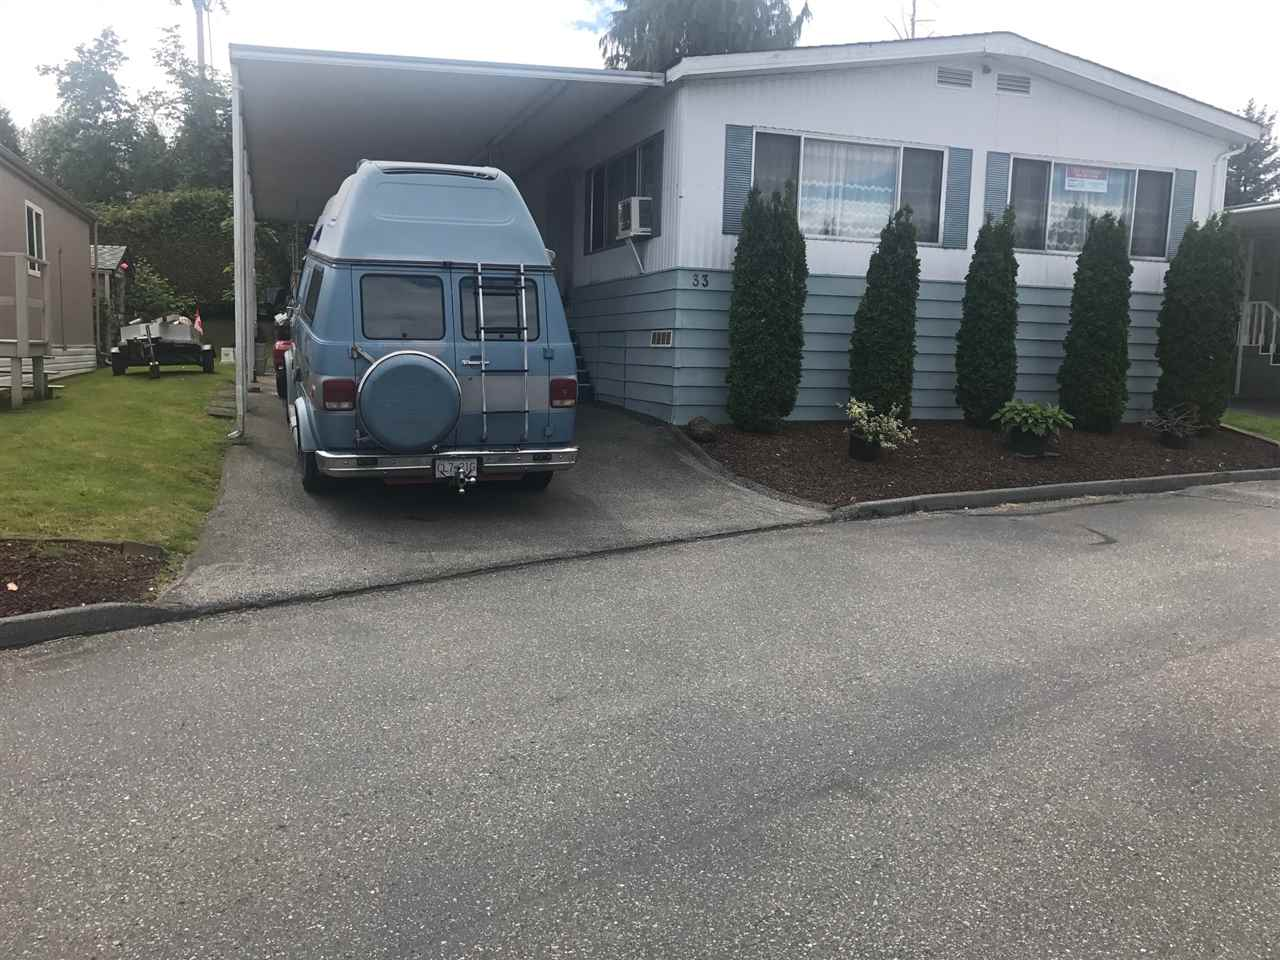 "Main Photo: 33 8254 134 Street in Surrey: Bear Creek Green Timbers Manufactured Home for sale in ""West Wood Estates"" : MLS(r) # R2179966"